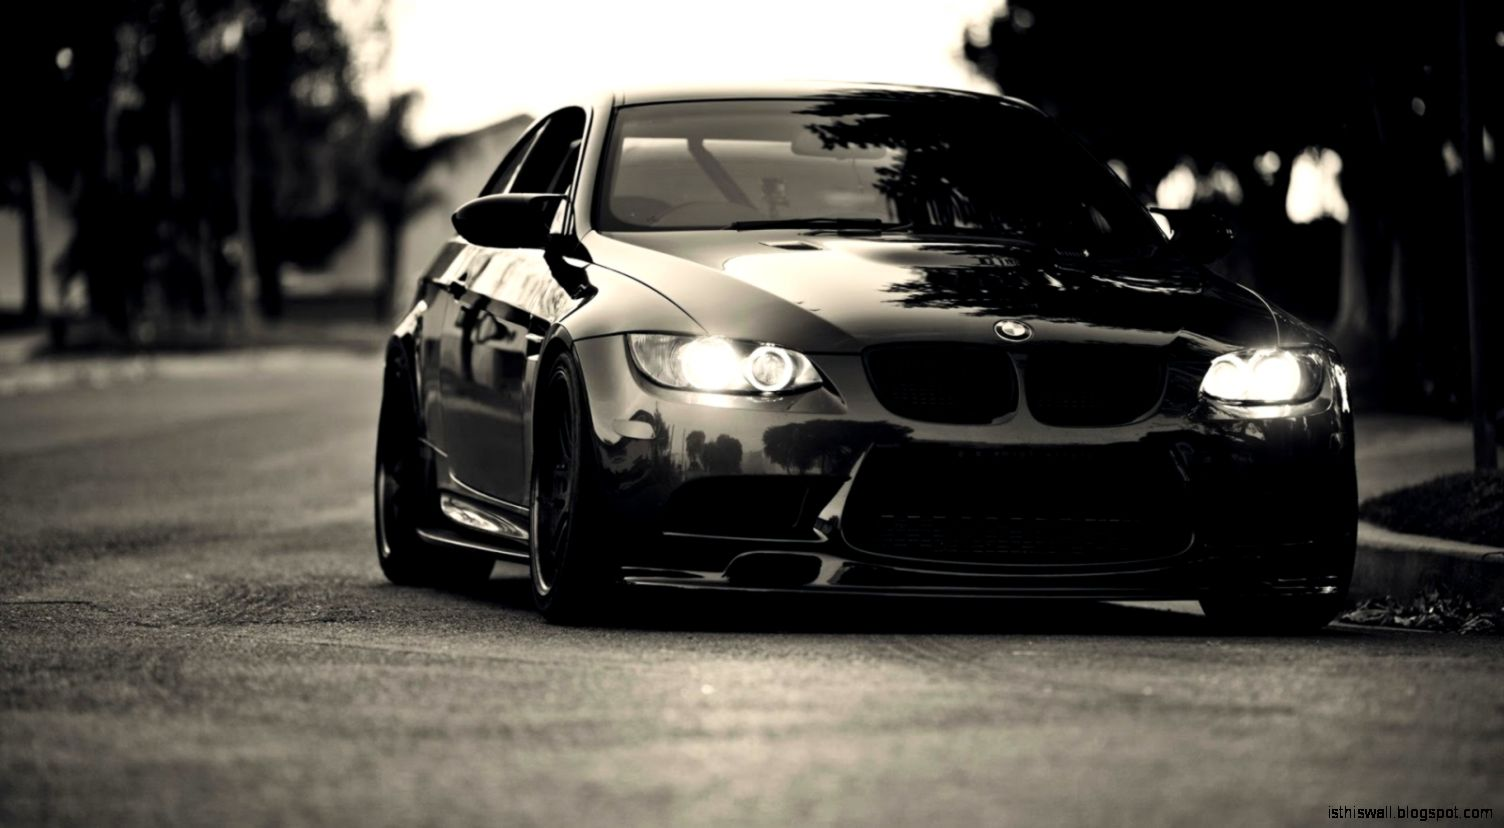 1600x900px Bmw Black Grand Look  317563